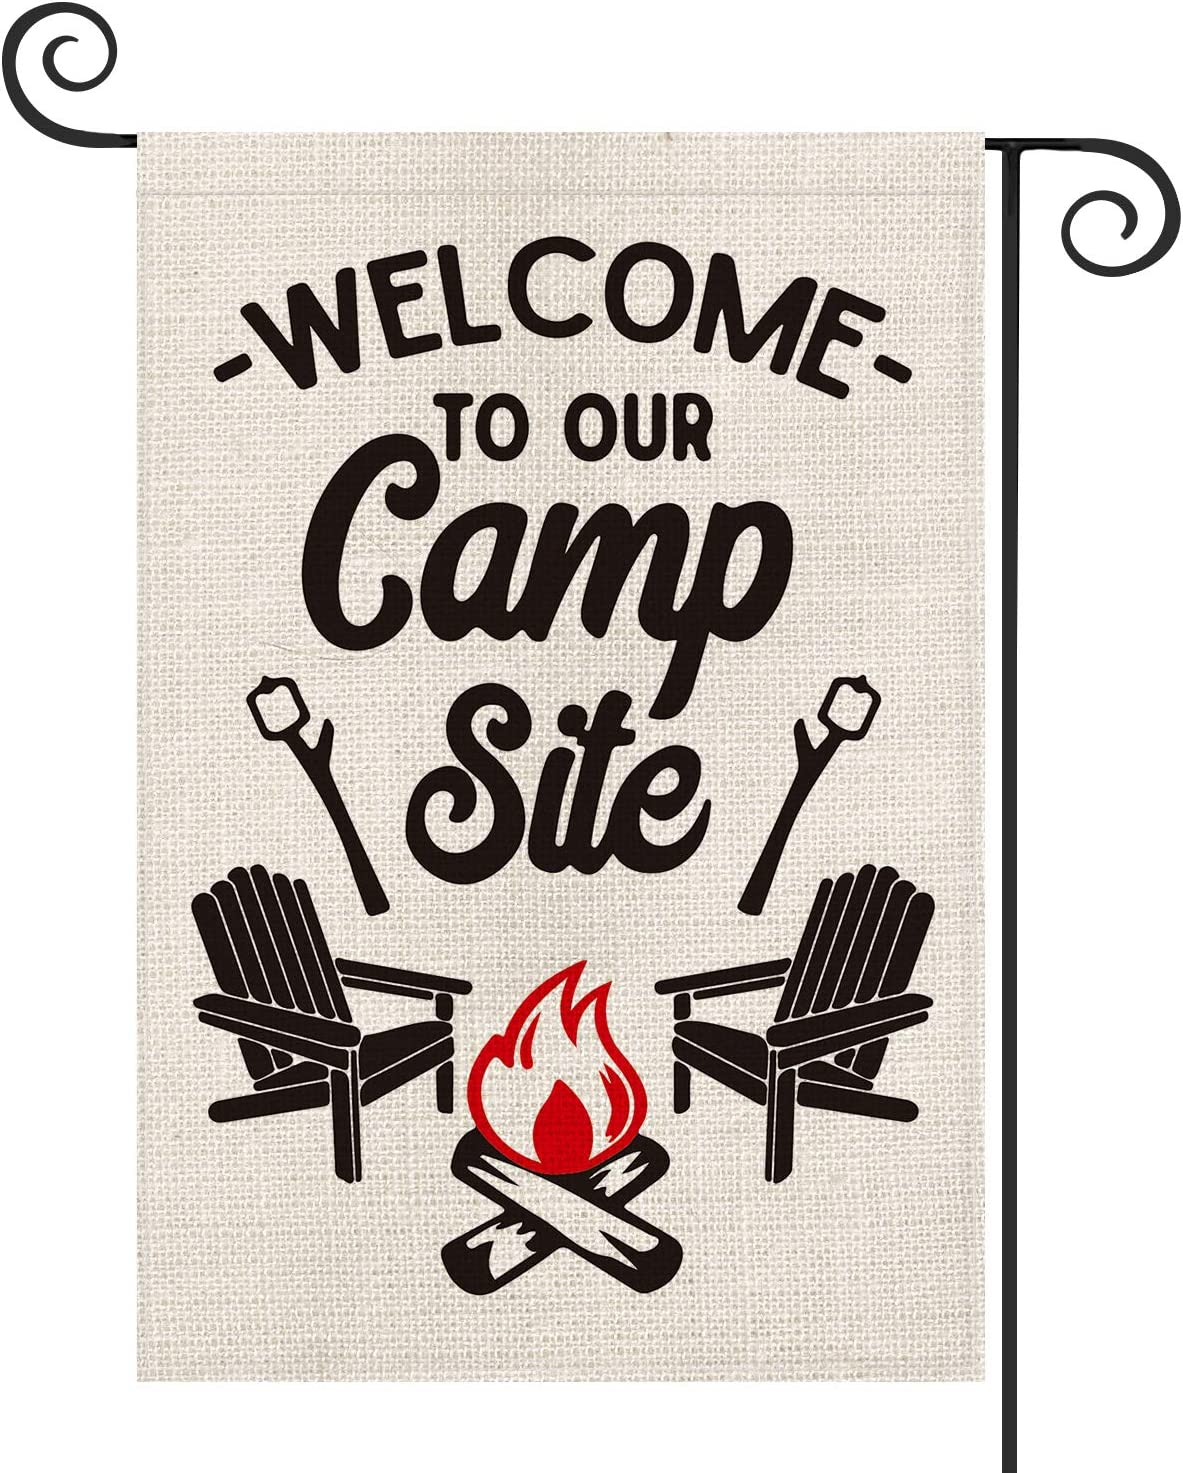 AVOIN Welcome to Our Camp Site Garden Flag Vertical Double Sided, Cottage, Log Fire Chair Flag Yard Outdoor Decoration 12.5 x 18 Inch